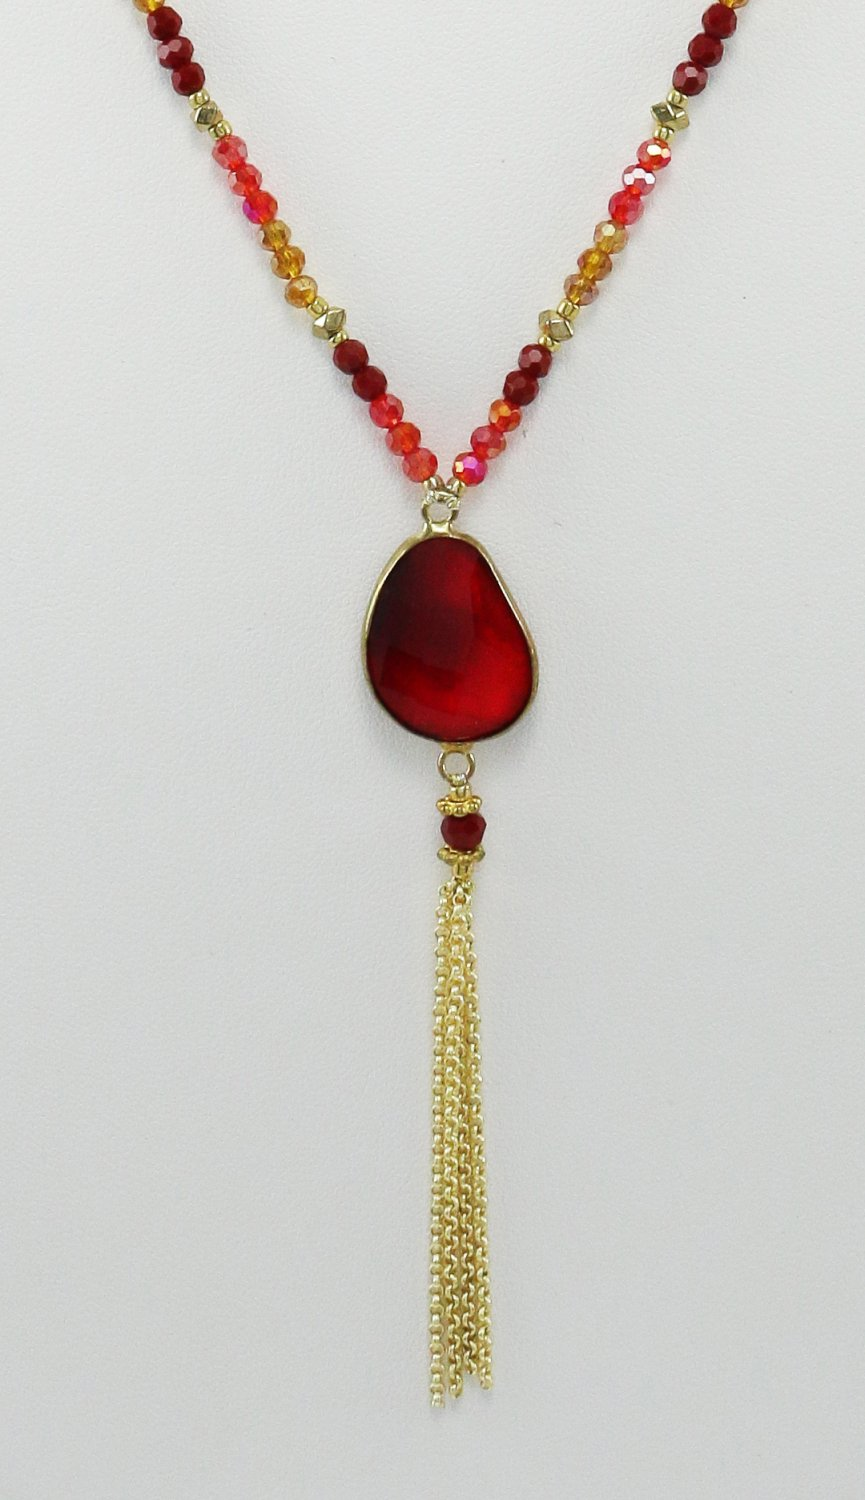 Handmade Brass And Polyester Necklace Beaded With Crystal Glass - Red Siam Color